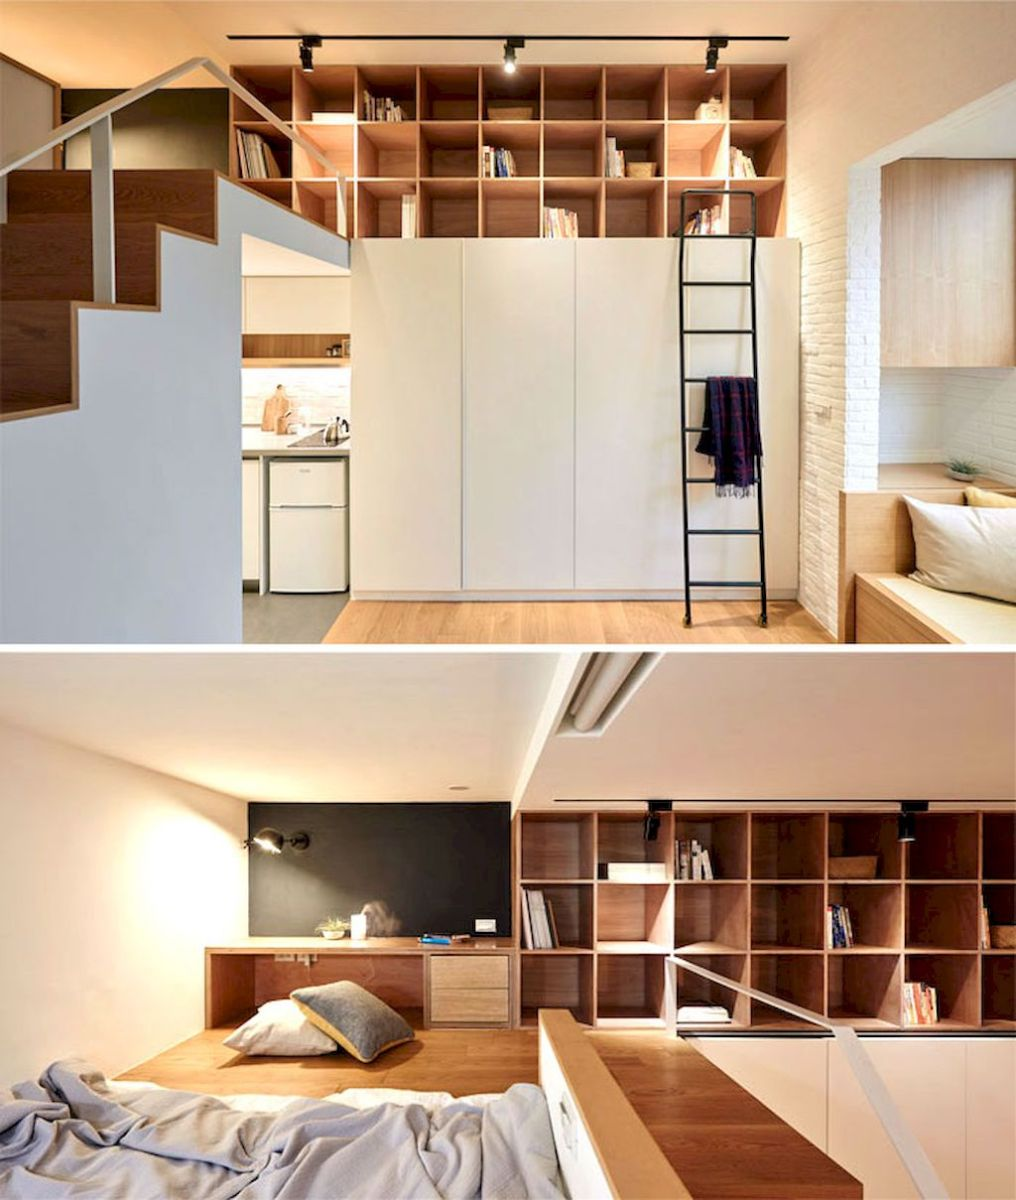 Bedroom Decorating Ideas for Rental Apartment Part 43